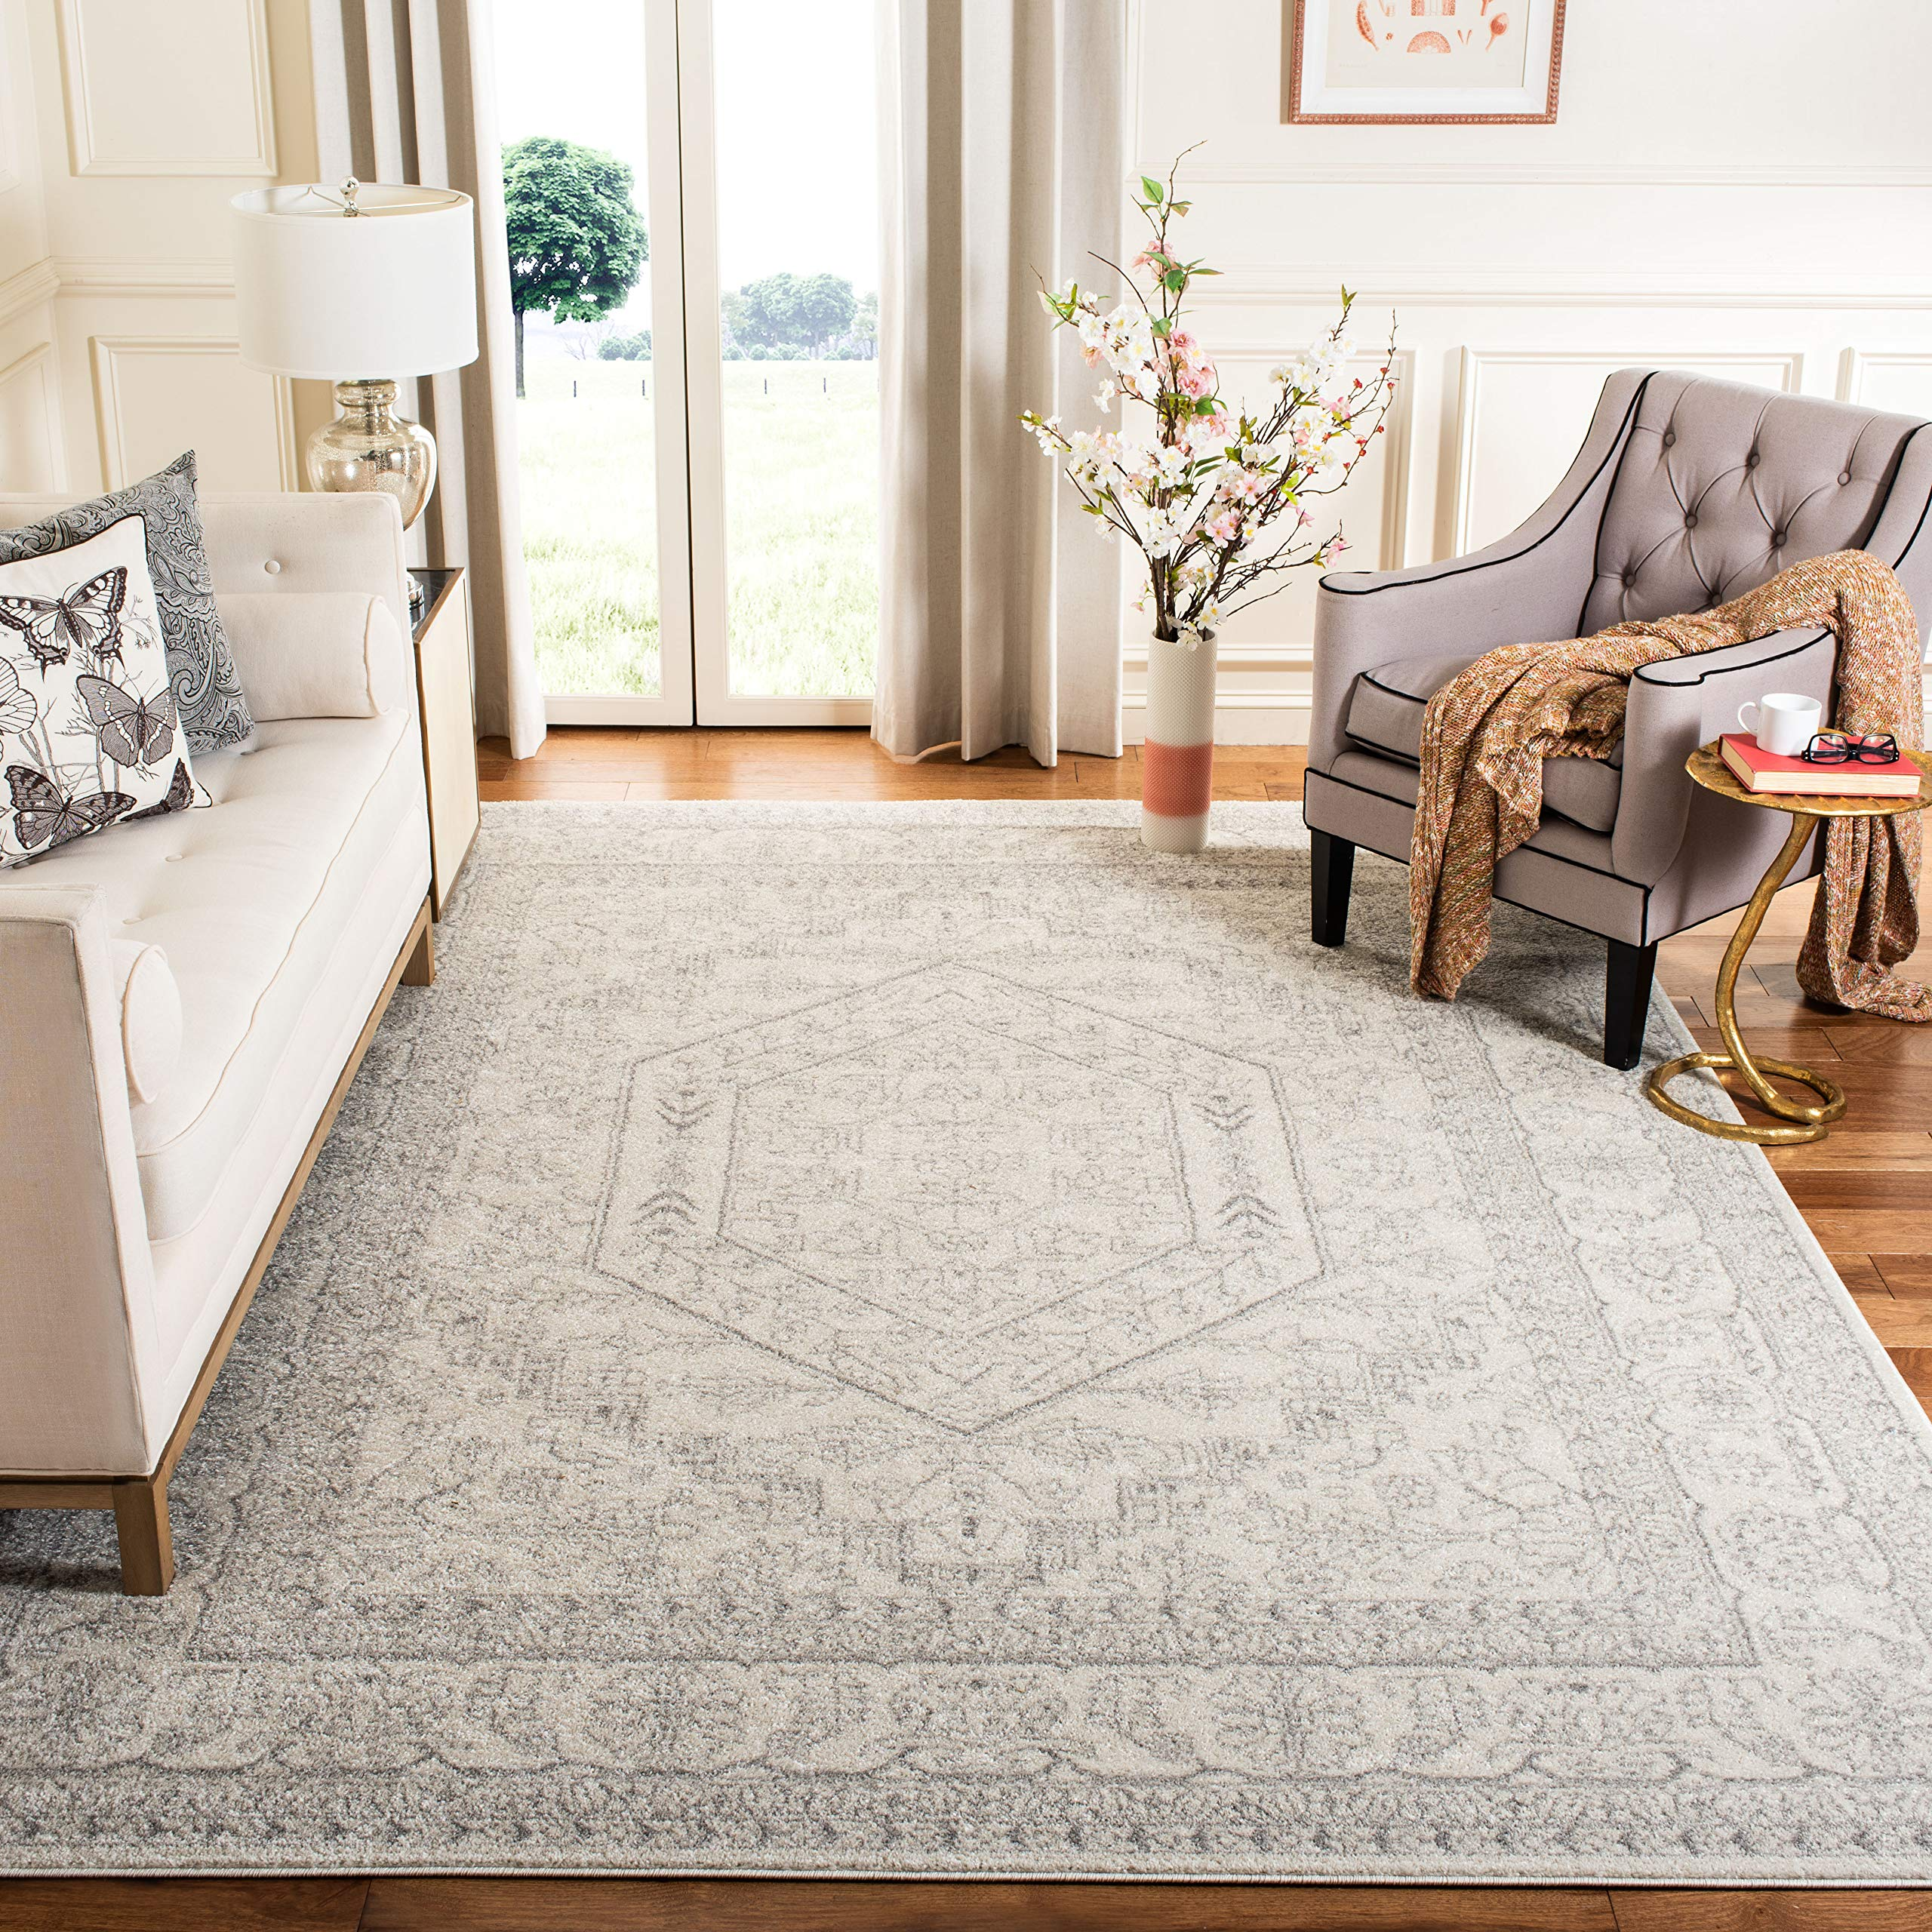 Safavieh Adirondack Collection ADR108B Ivory and Silver Oriental Vintage Medallion Area Rug (8' x 10') by Safavieh